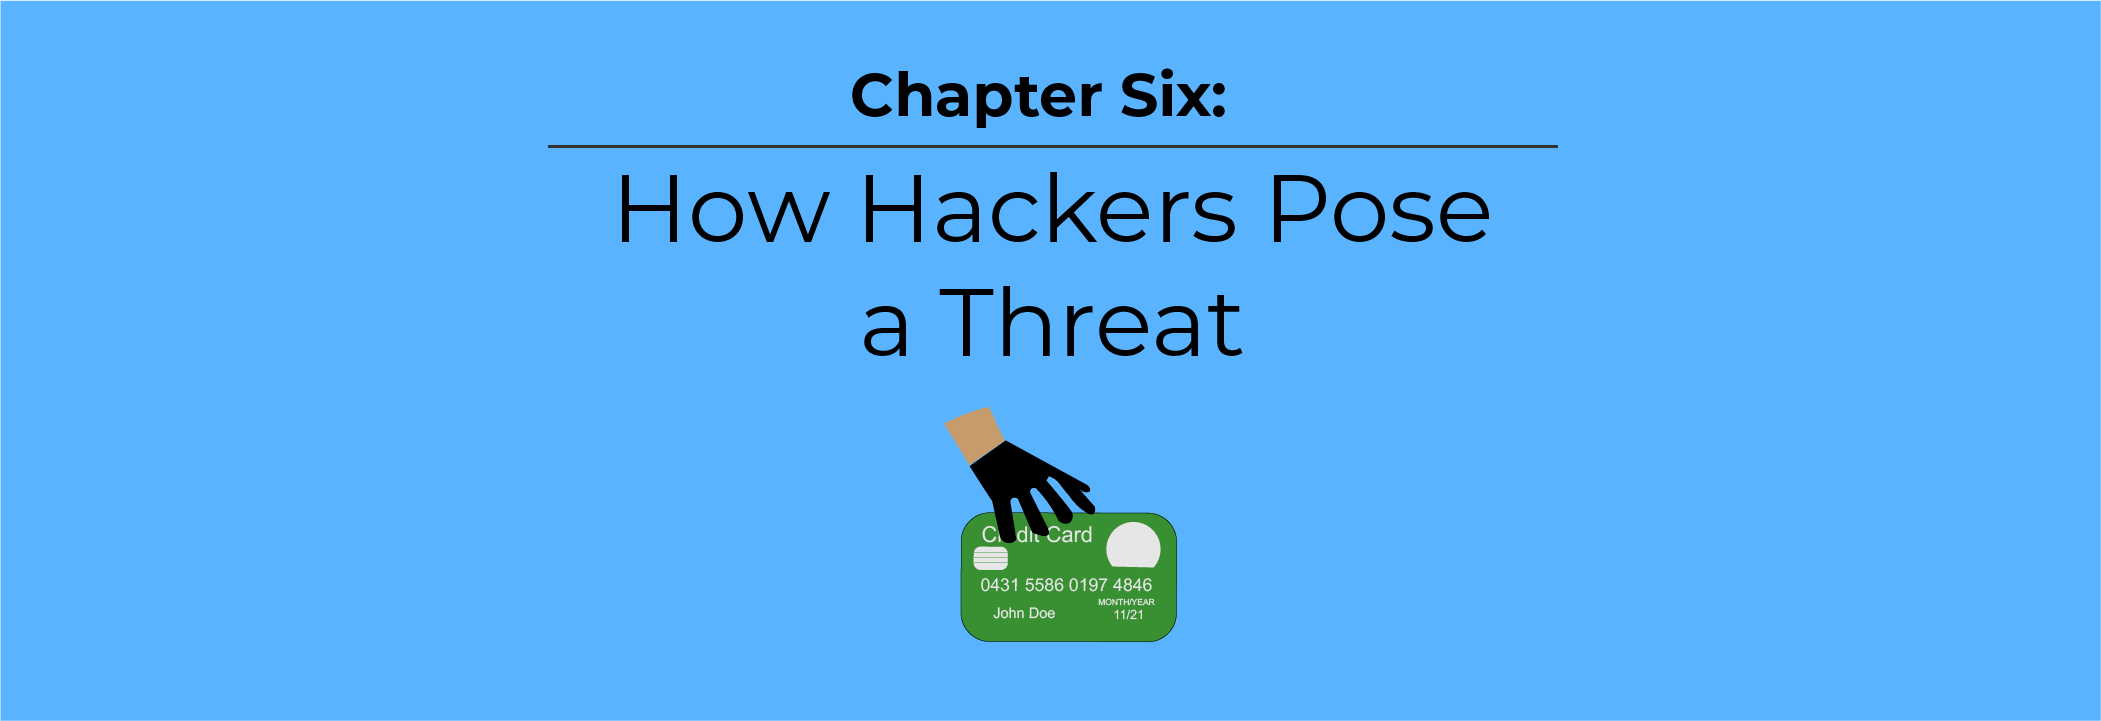 How Hackers Pose a Threat